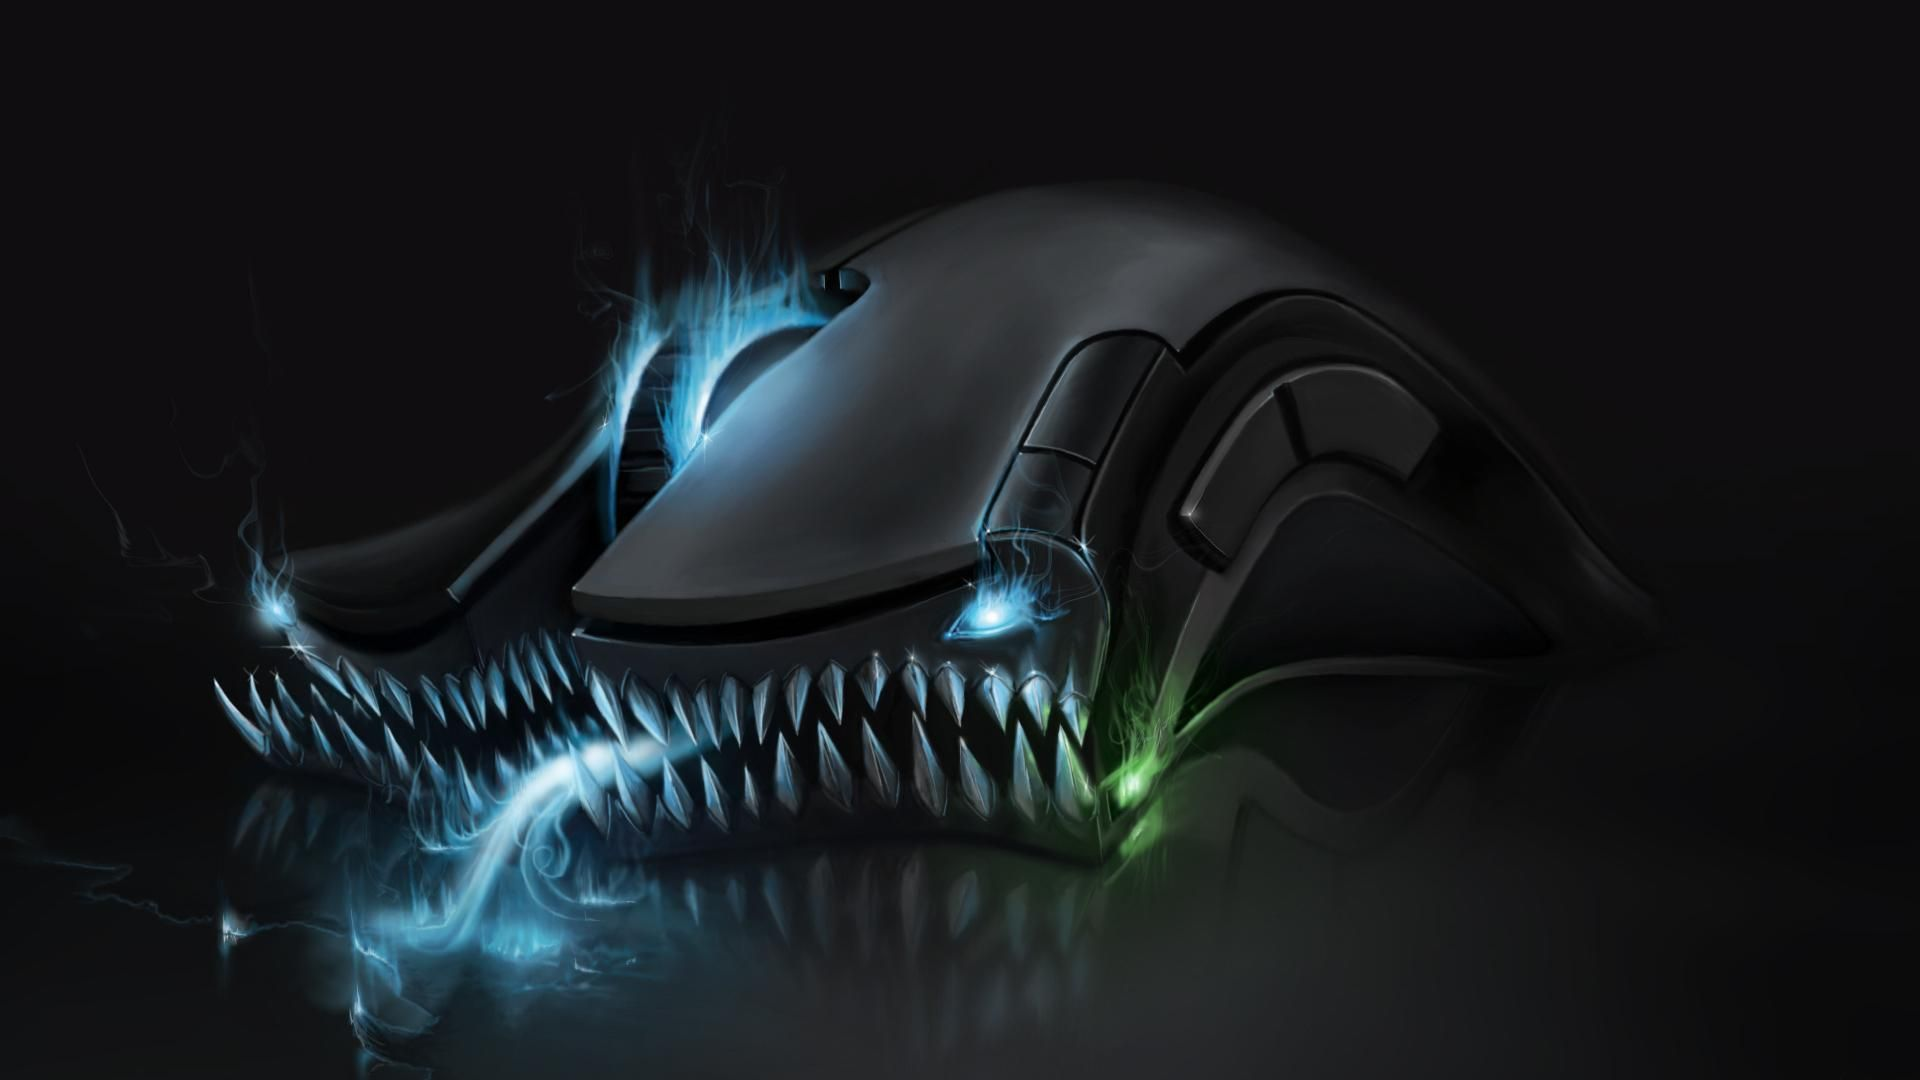 A Collection Of Gaming Wallpapers All P Album On Imgur 1920 1080 Gamer Wallpaper 51 Wallp Gaming Desktop Backgrounds Gaming Wallpapers Hd Gaming Wallpapers